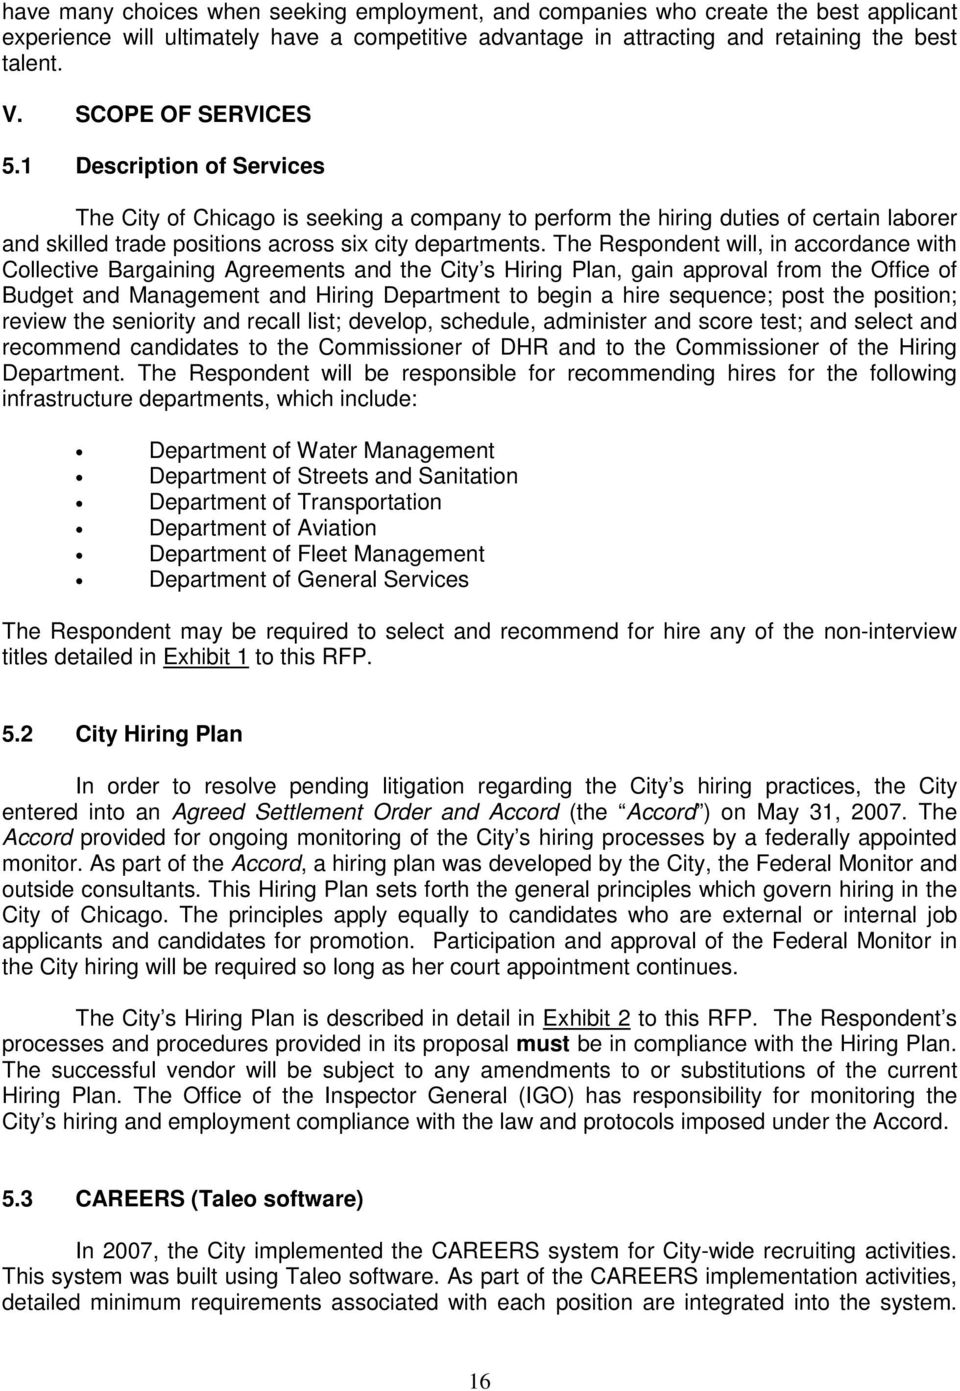 The Respondent will, in accordance with Collective Bargaining Agreements and the City s Hiring Plan, gain approval from the Office of Budget and Management and Hiring Department to begin a hire